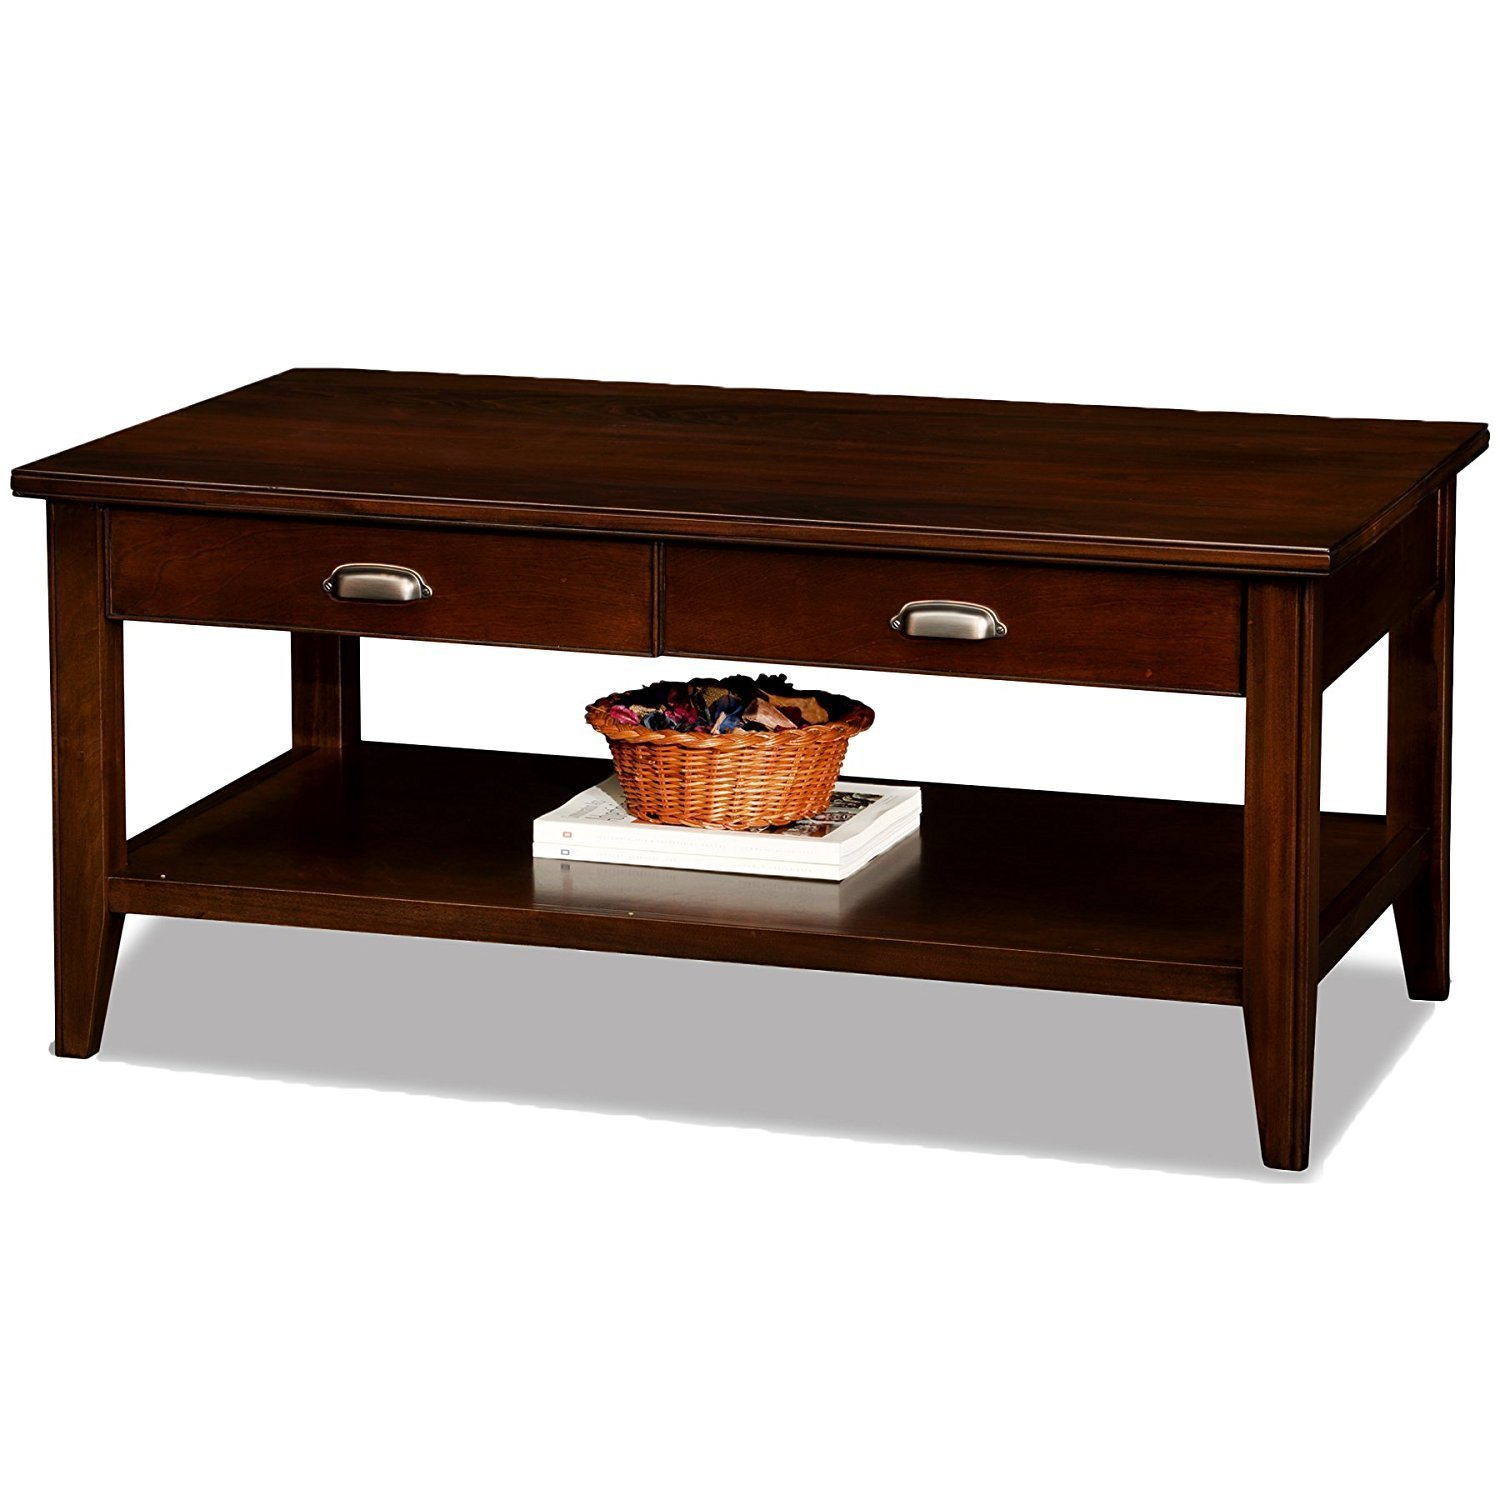 Solid Wood Coffee Table With Storage Home Furniture Design